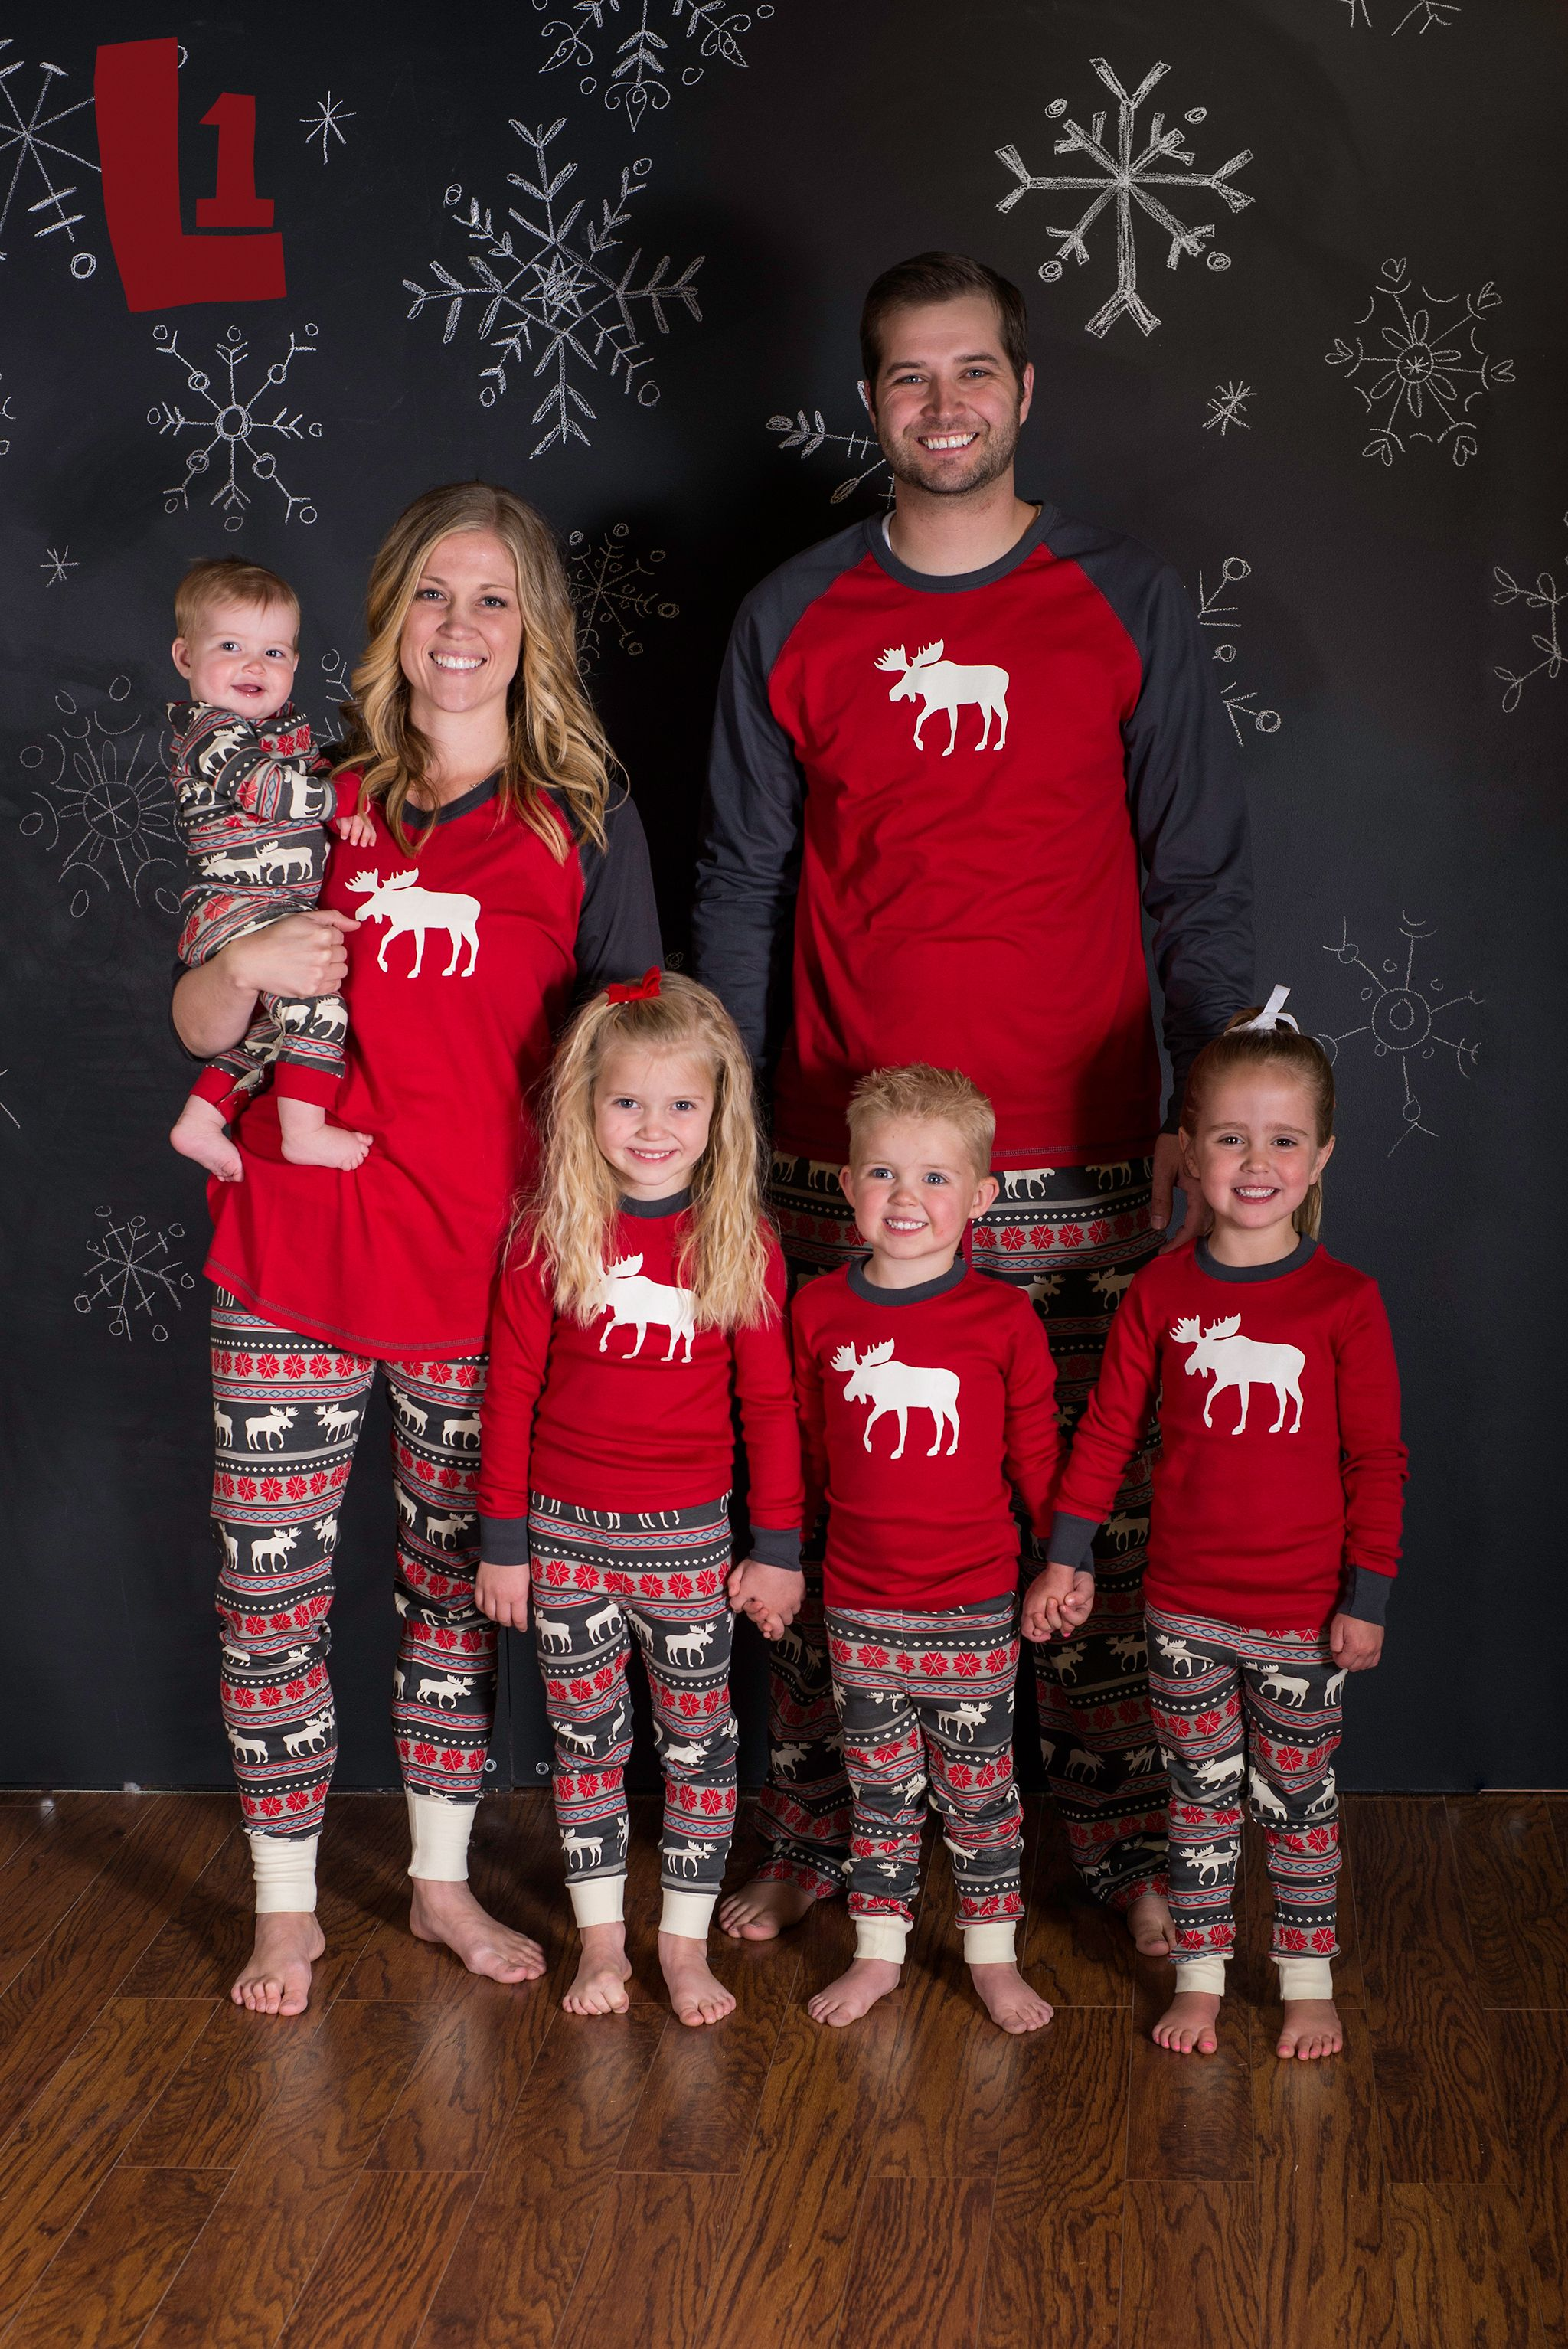 7631e0f8e8 Matching pyjamas photo. Matching pyjamas photo Matching Pajamas